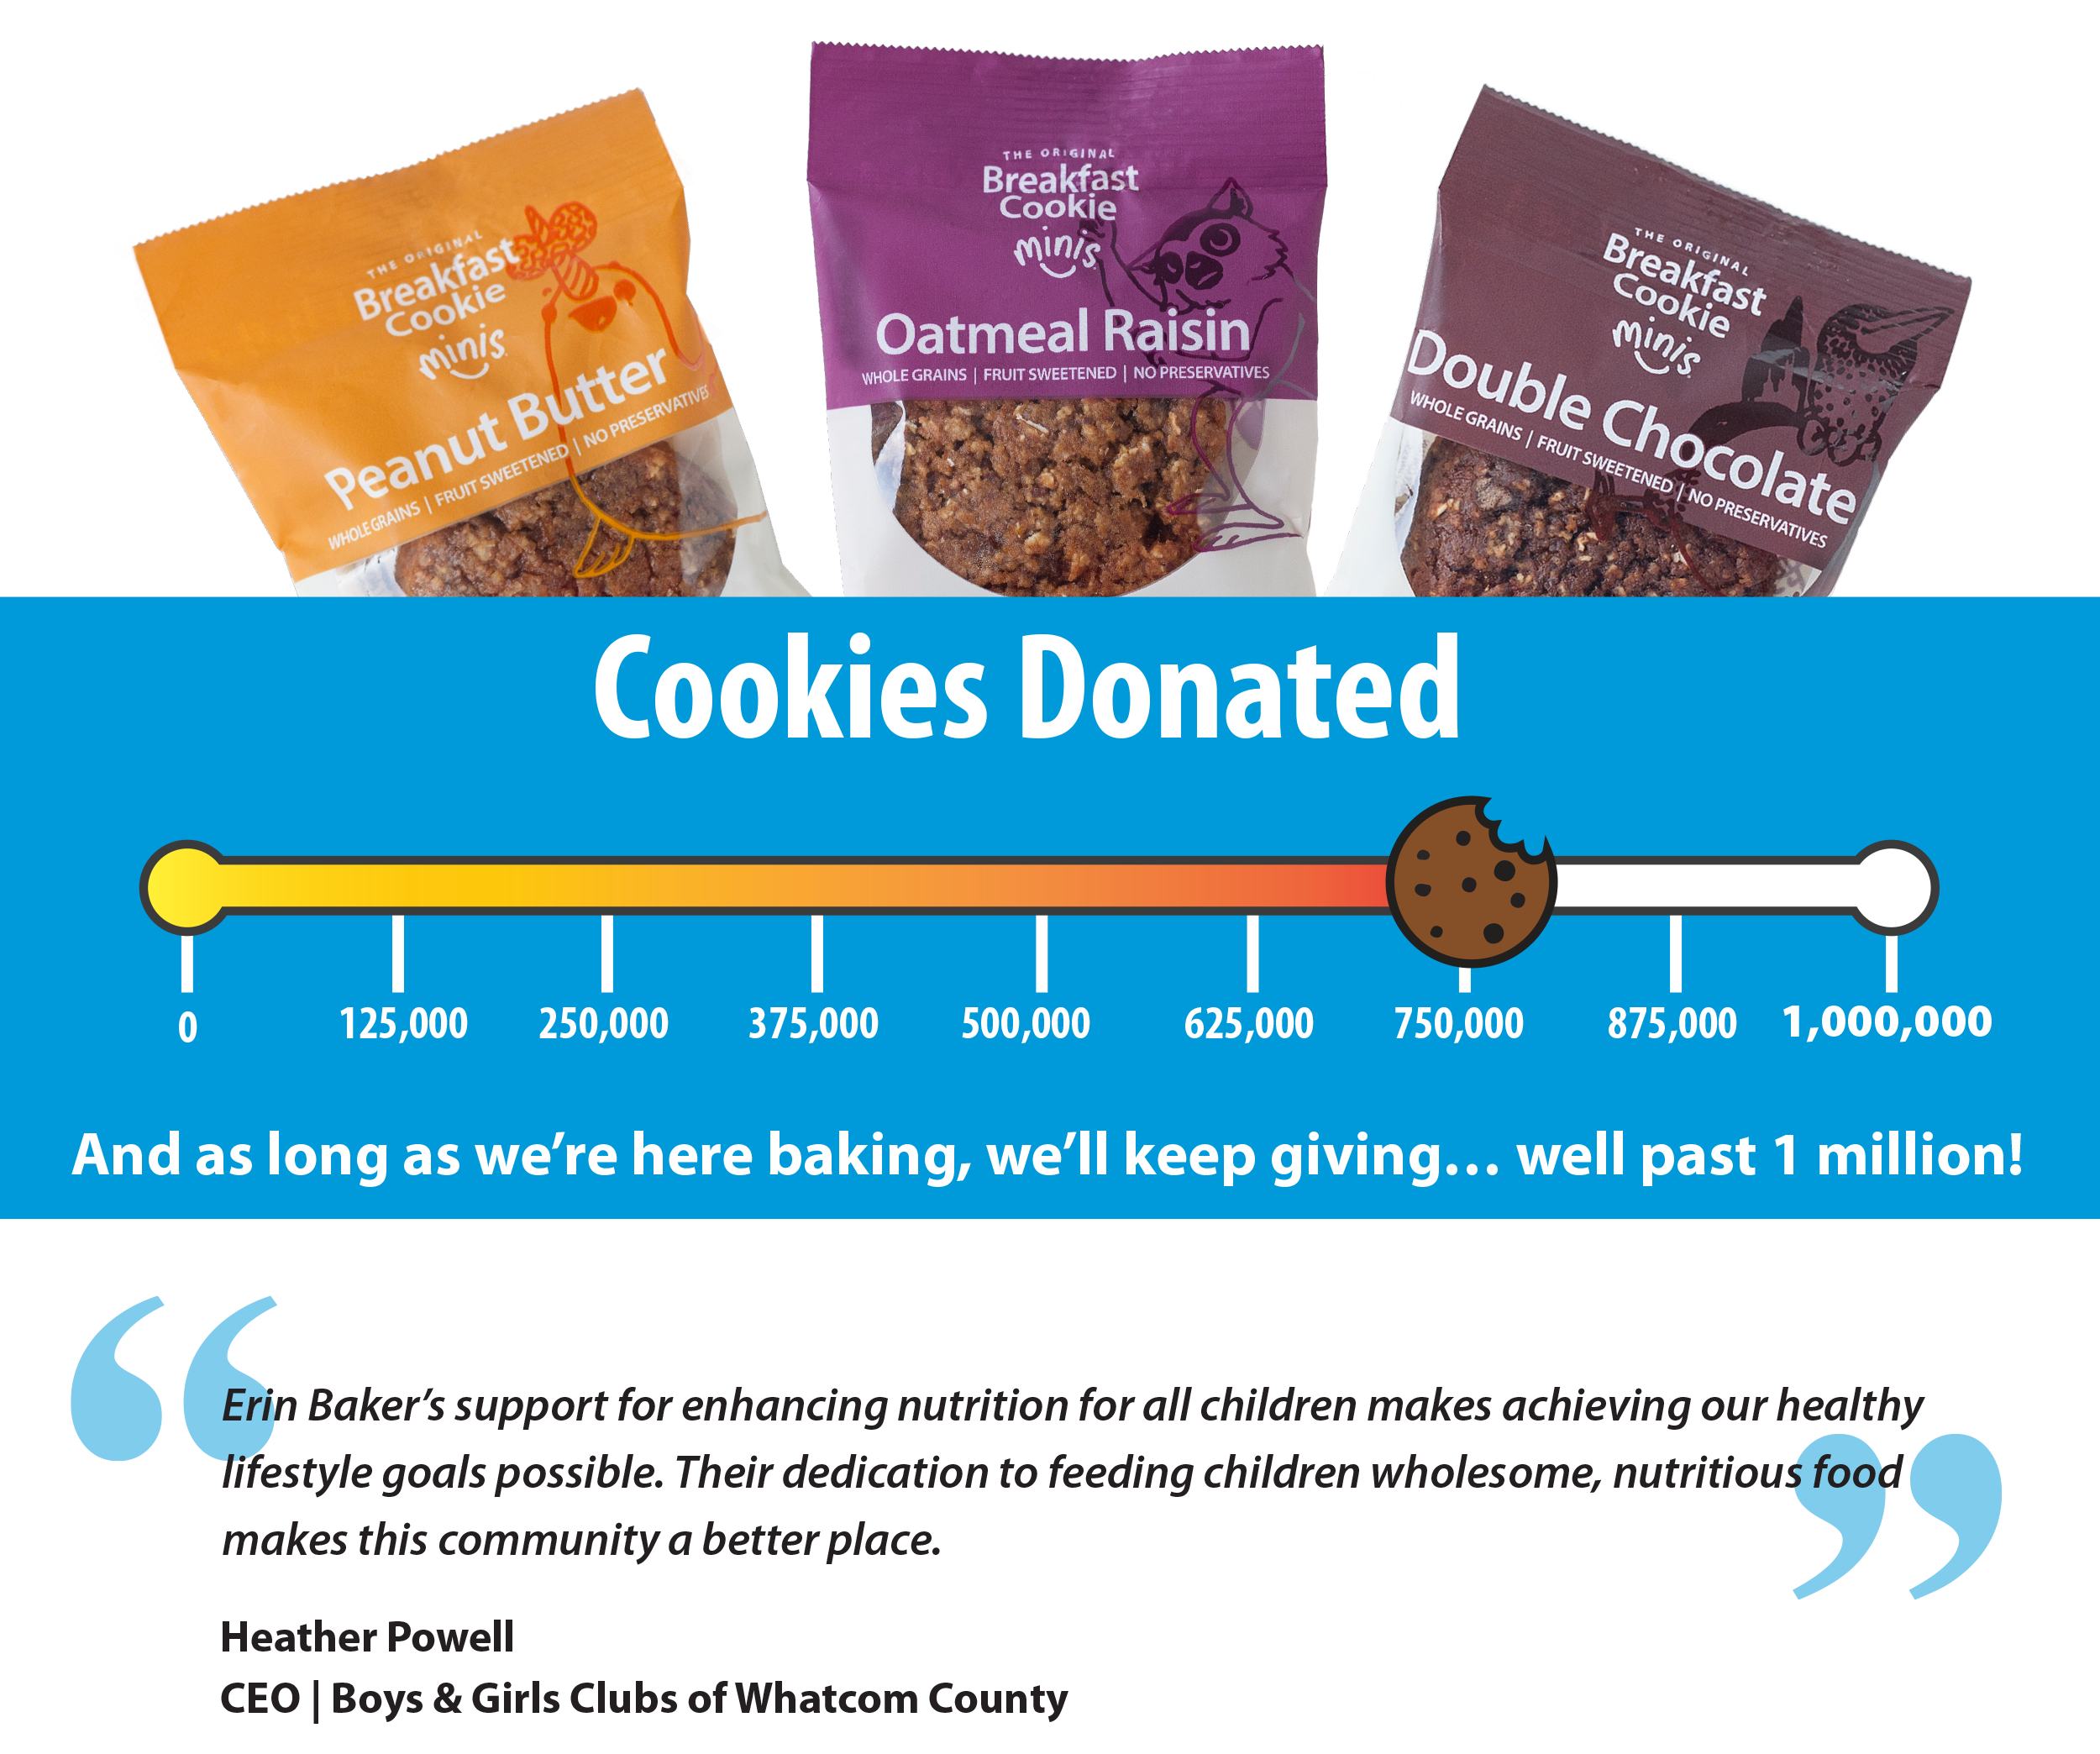 Tracker of Donated Cookies